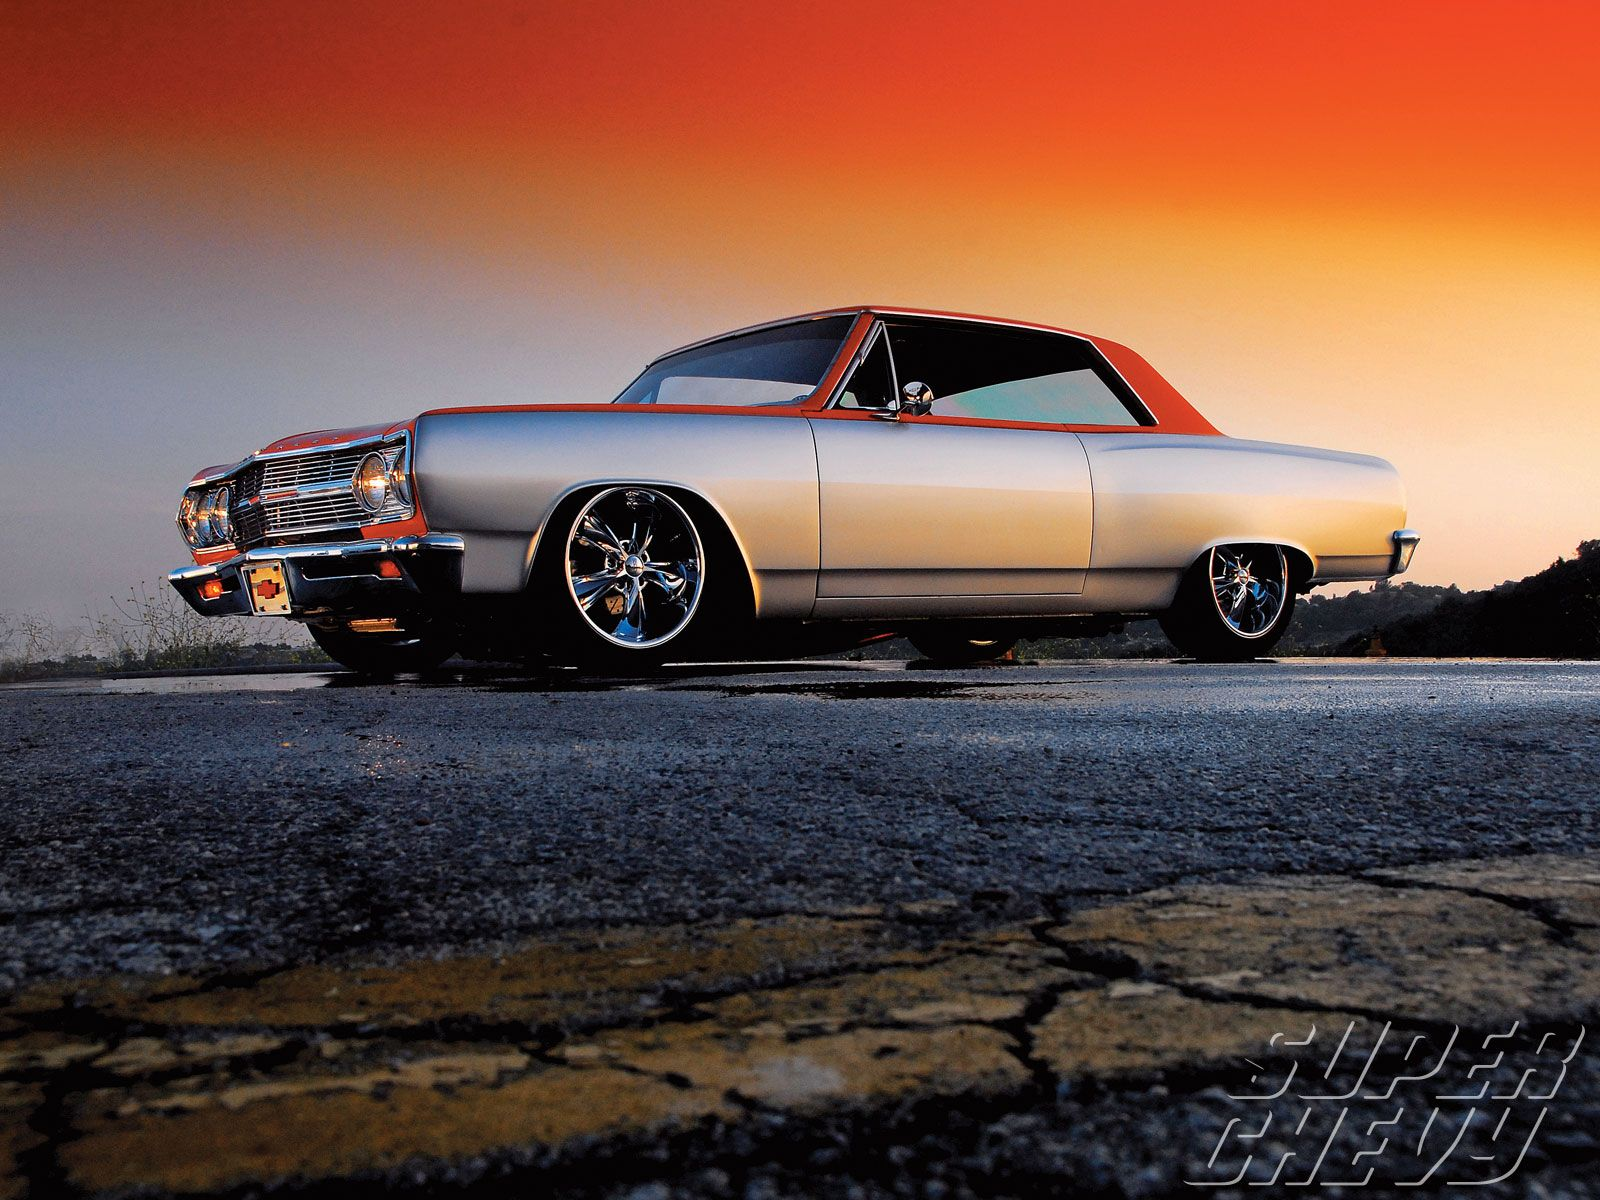 1965 Chevelle Dream Cars Old School Muscle Cars Chevelle